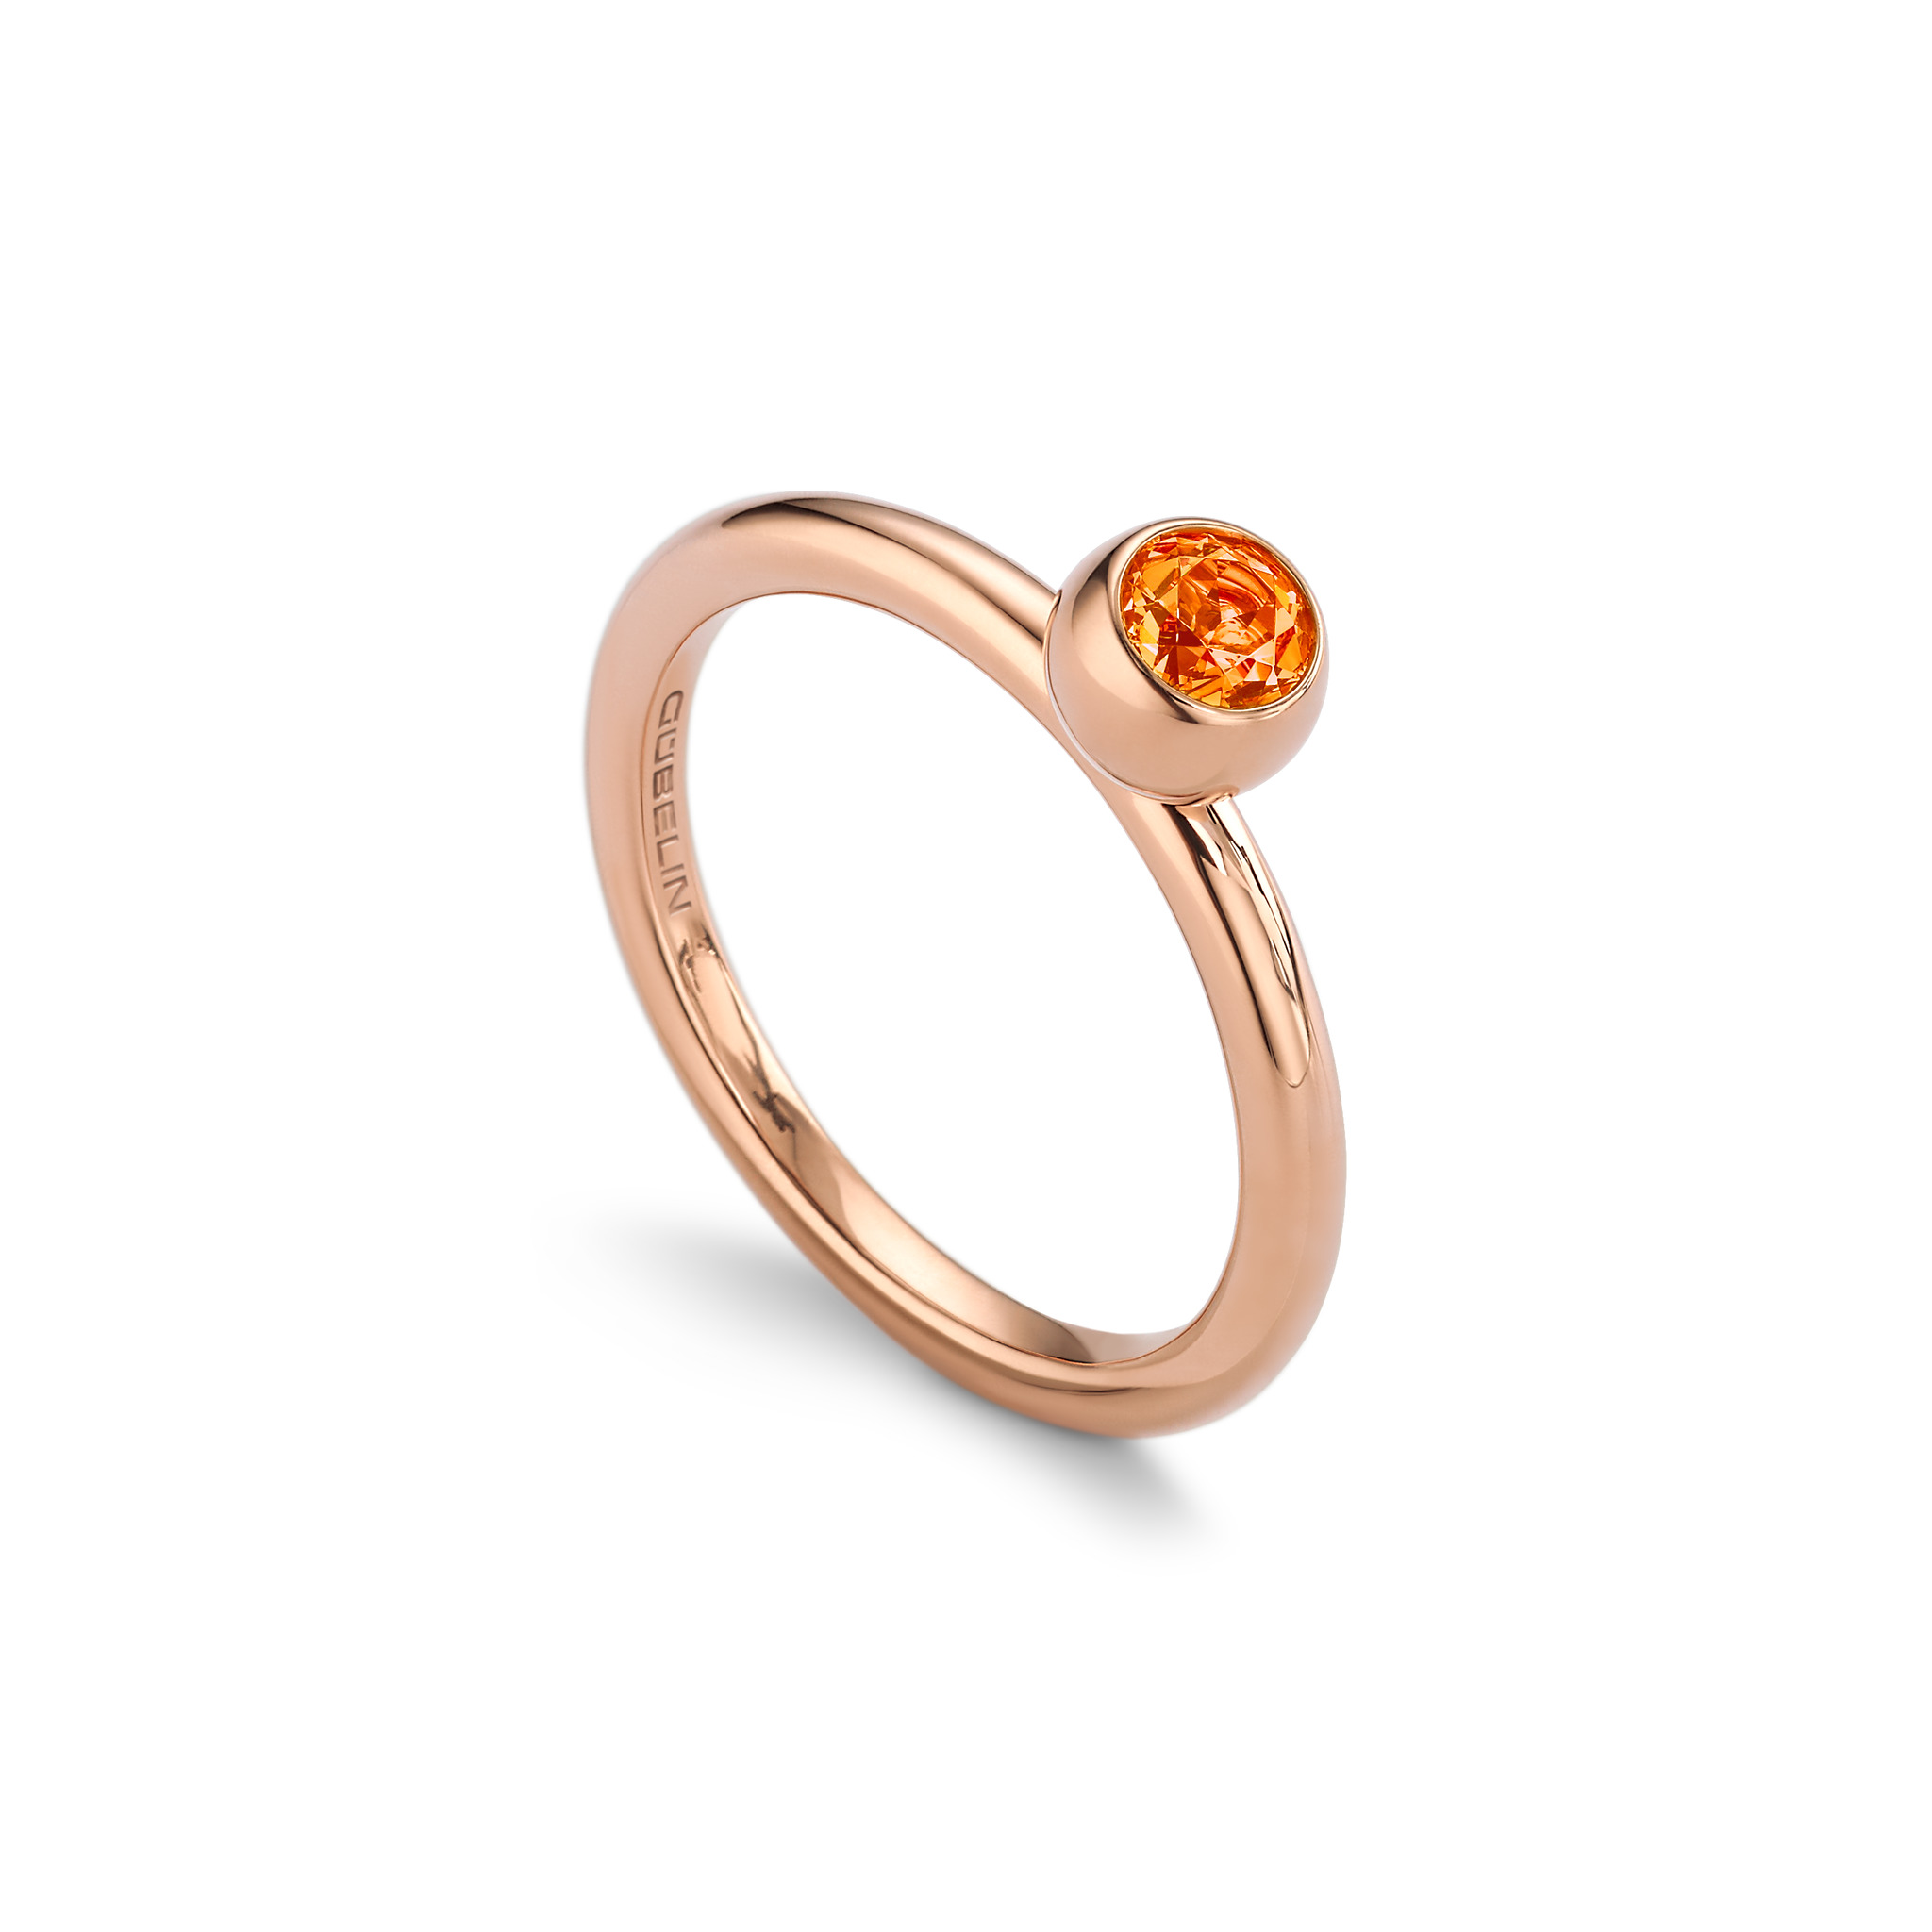 Ring with fire opal